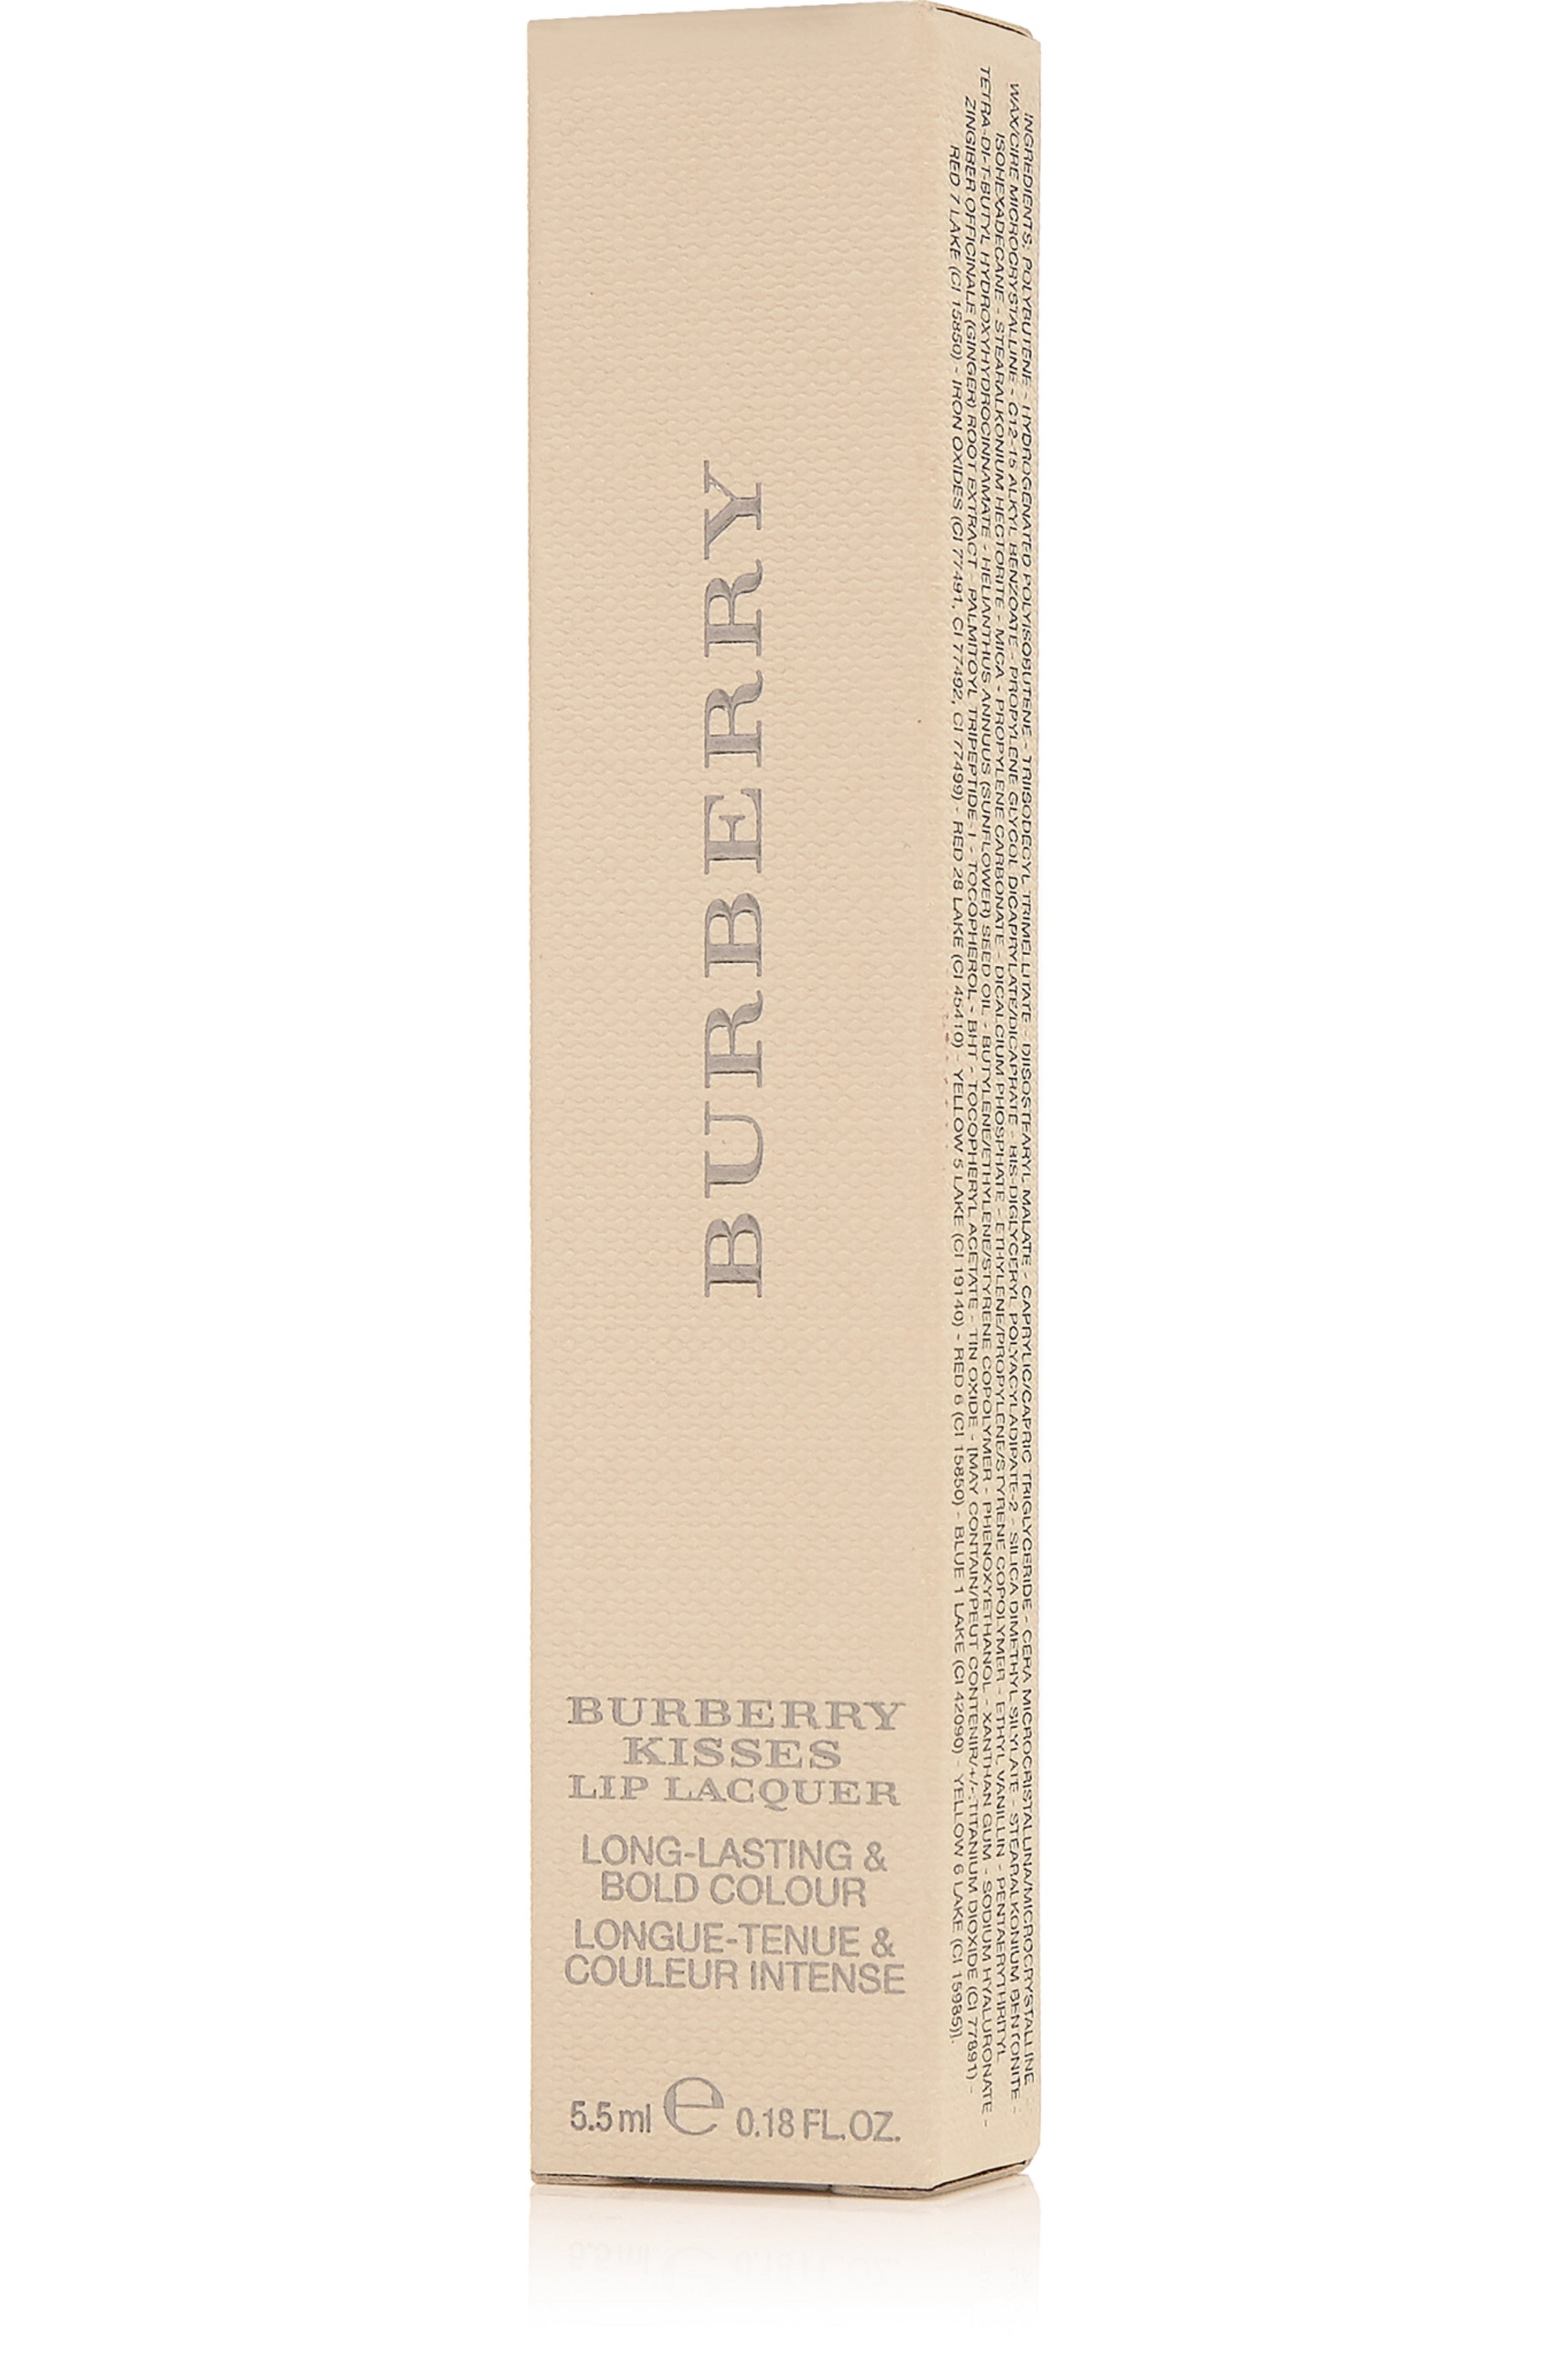 Burberry Beauty Burberry Kisses Lip Lacquer - Military Red No.41